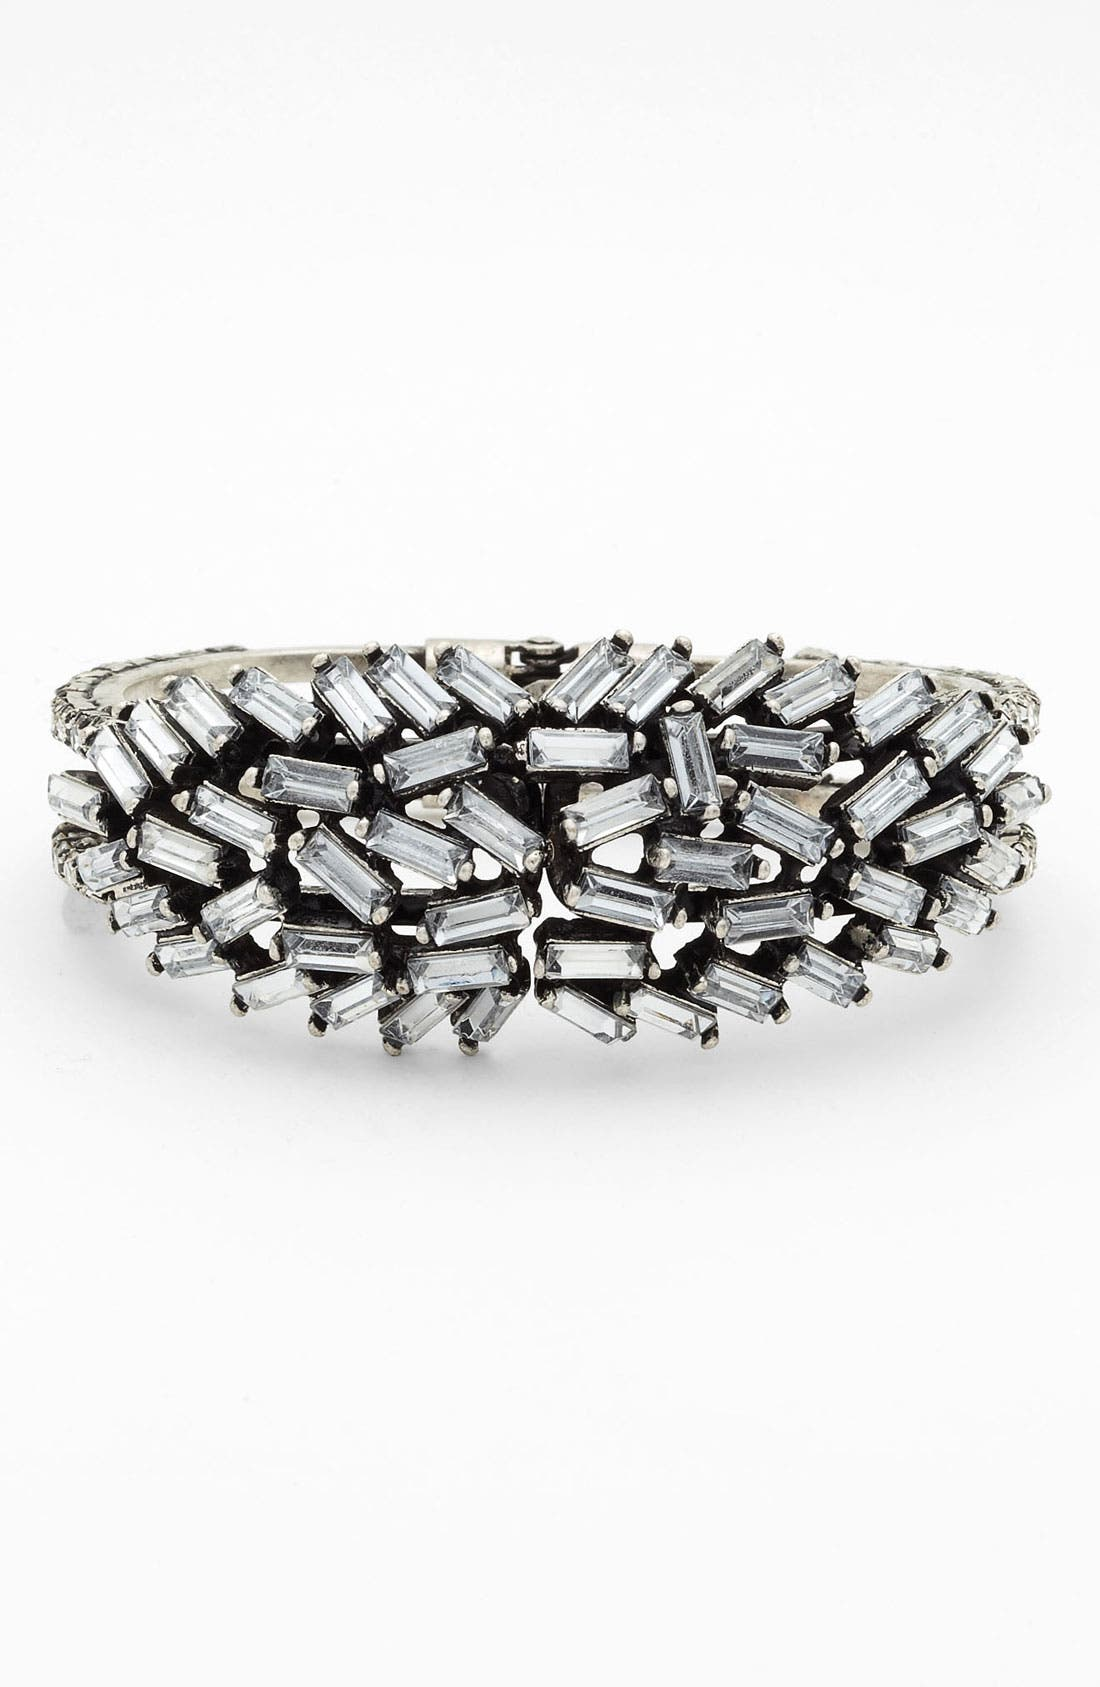 Alternate Image 1 Selected - BP. Vintage Rhinestone Cuff Bracelet